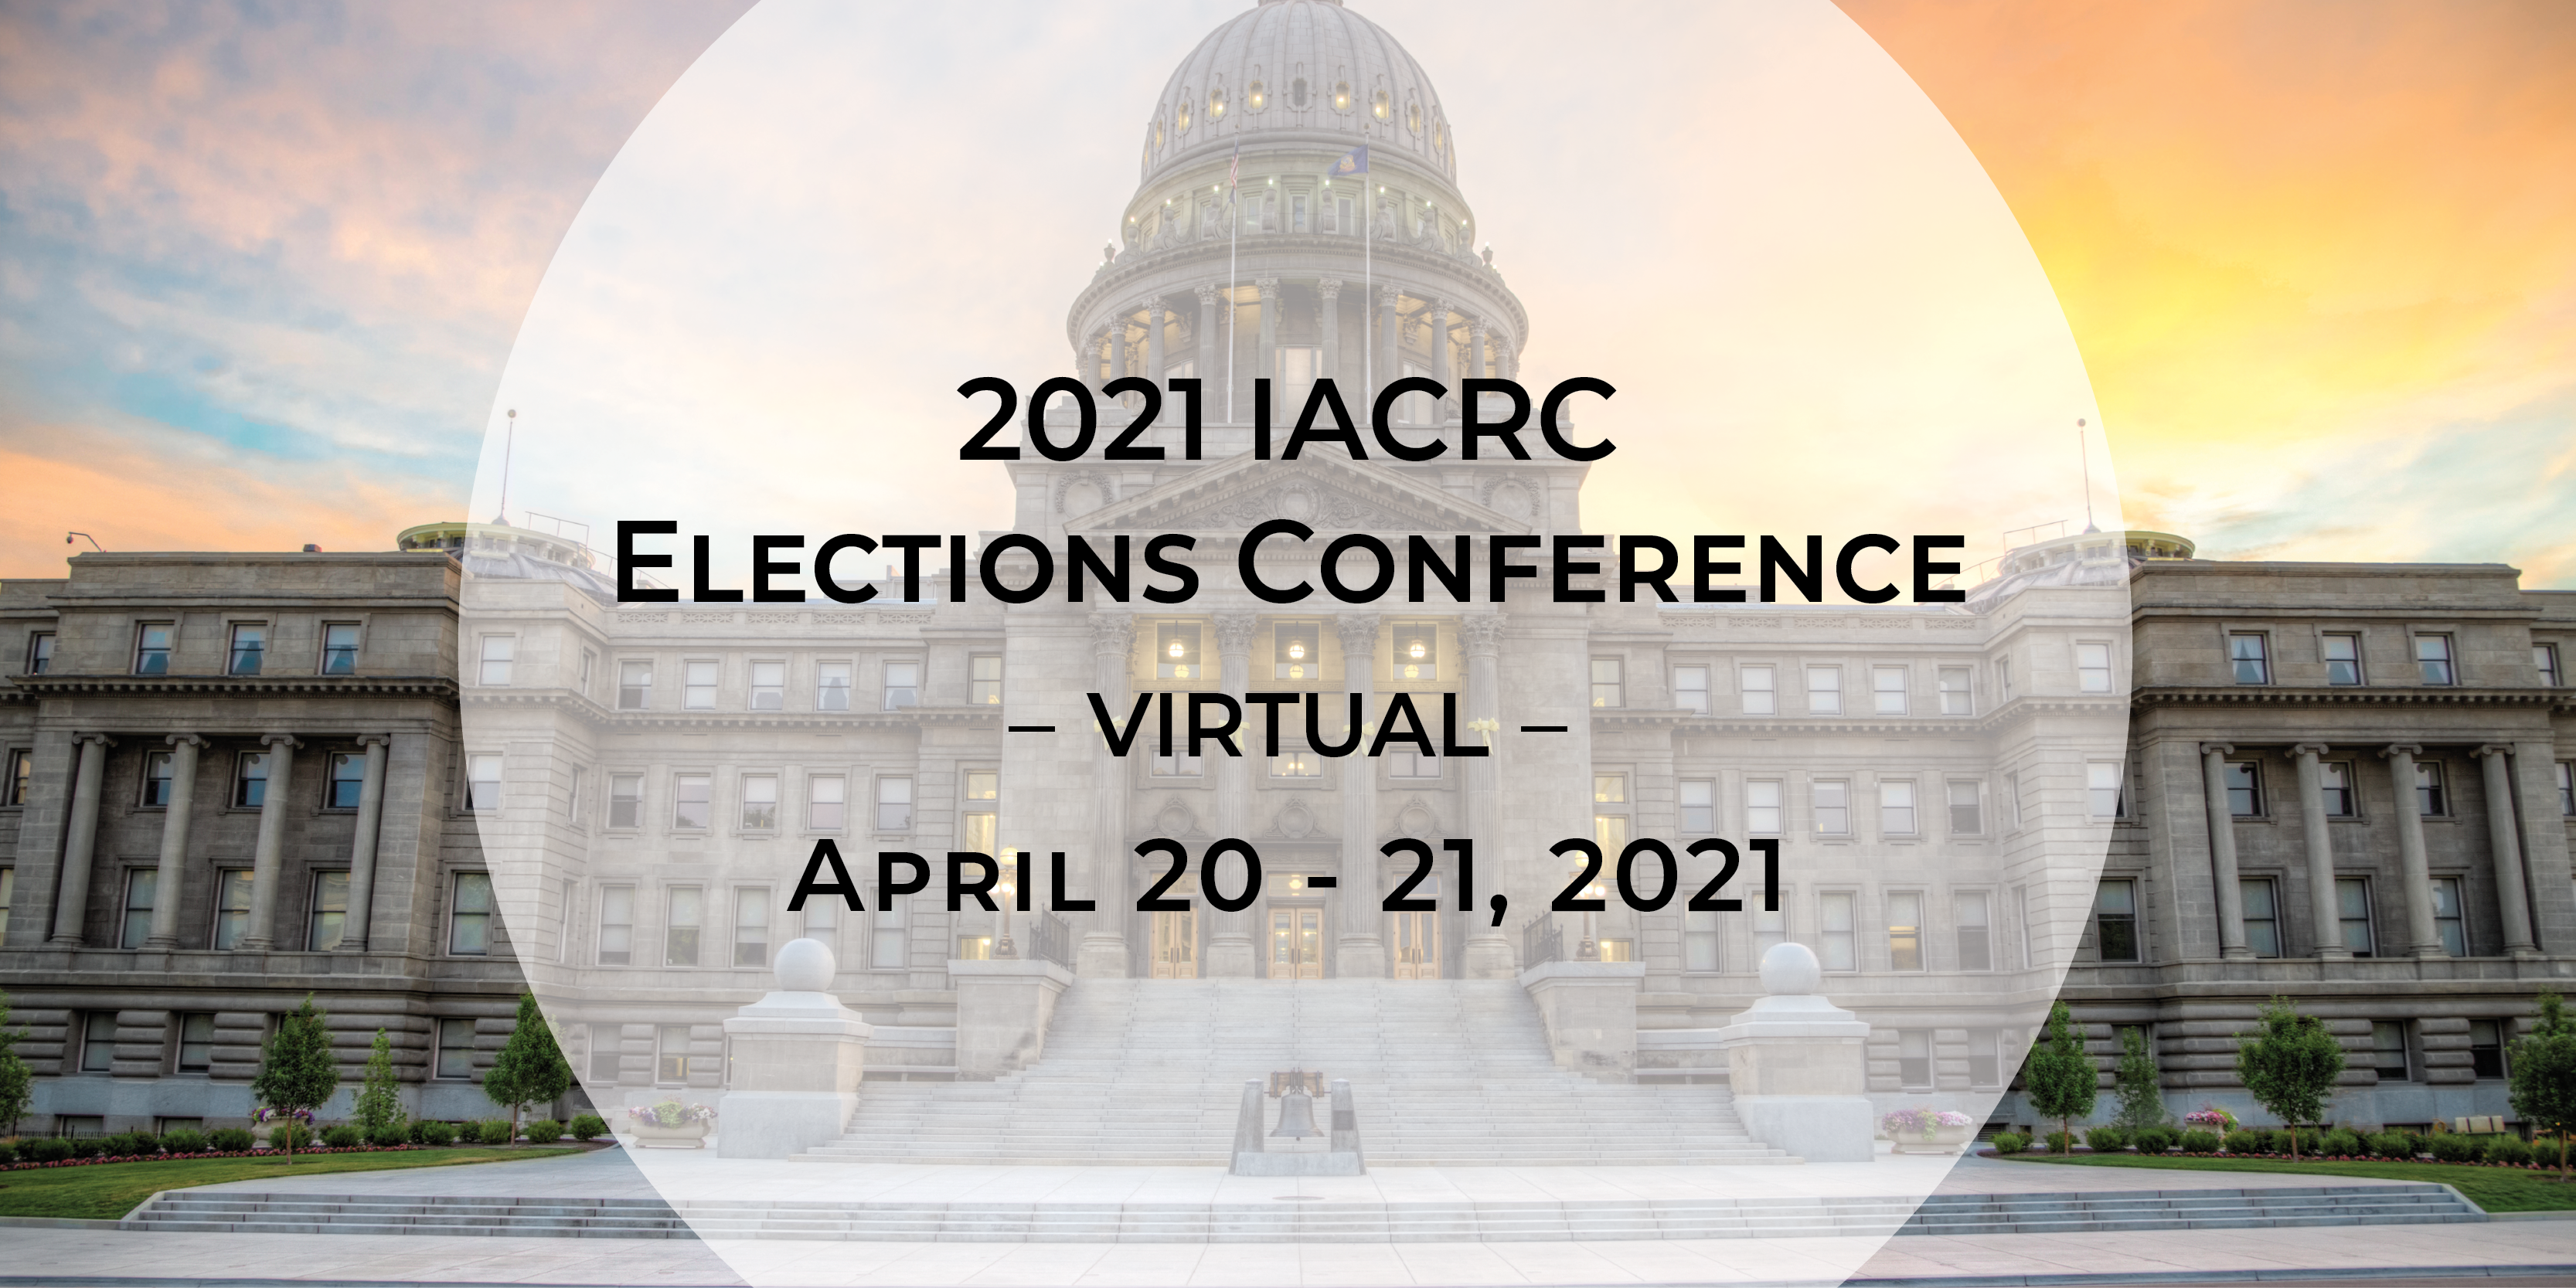 2021 IACRC Elections Conference